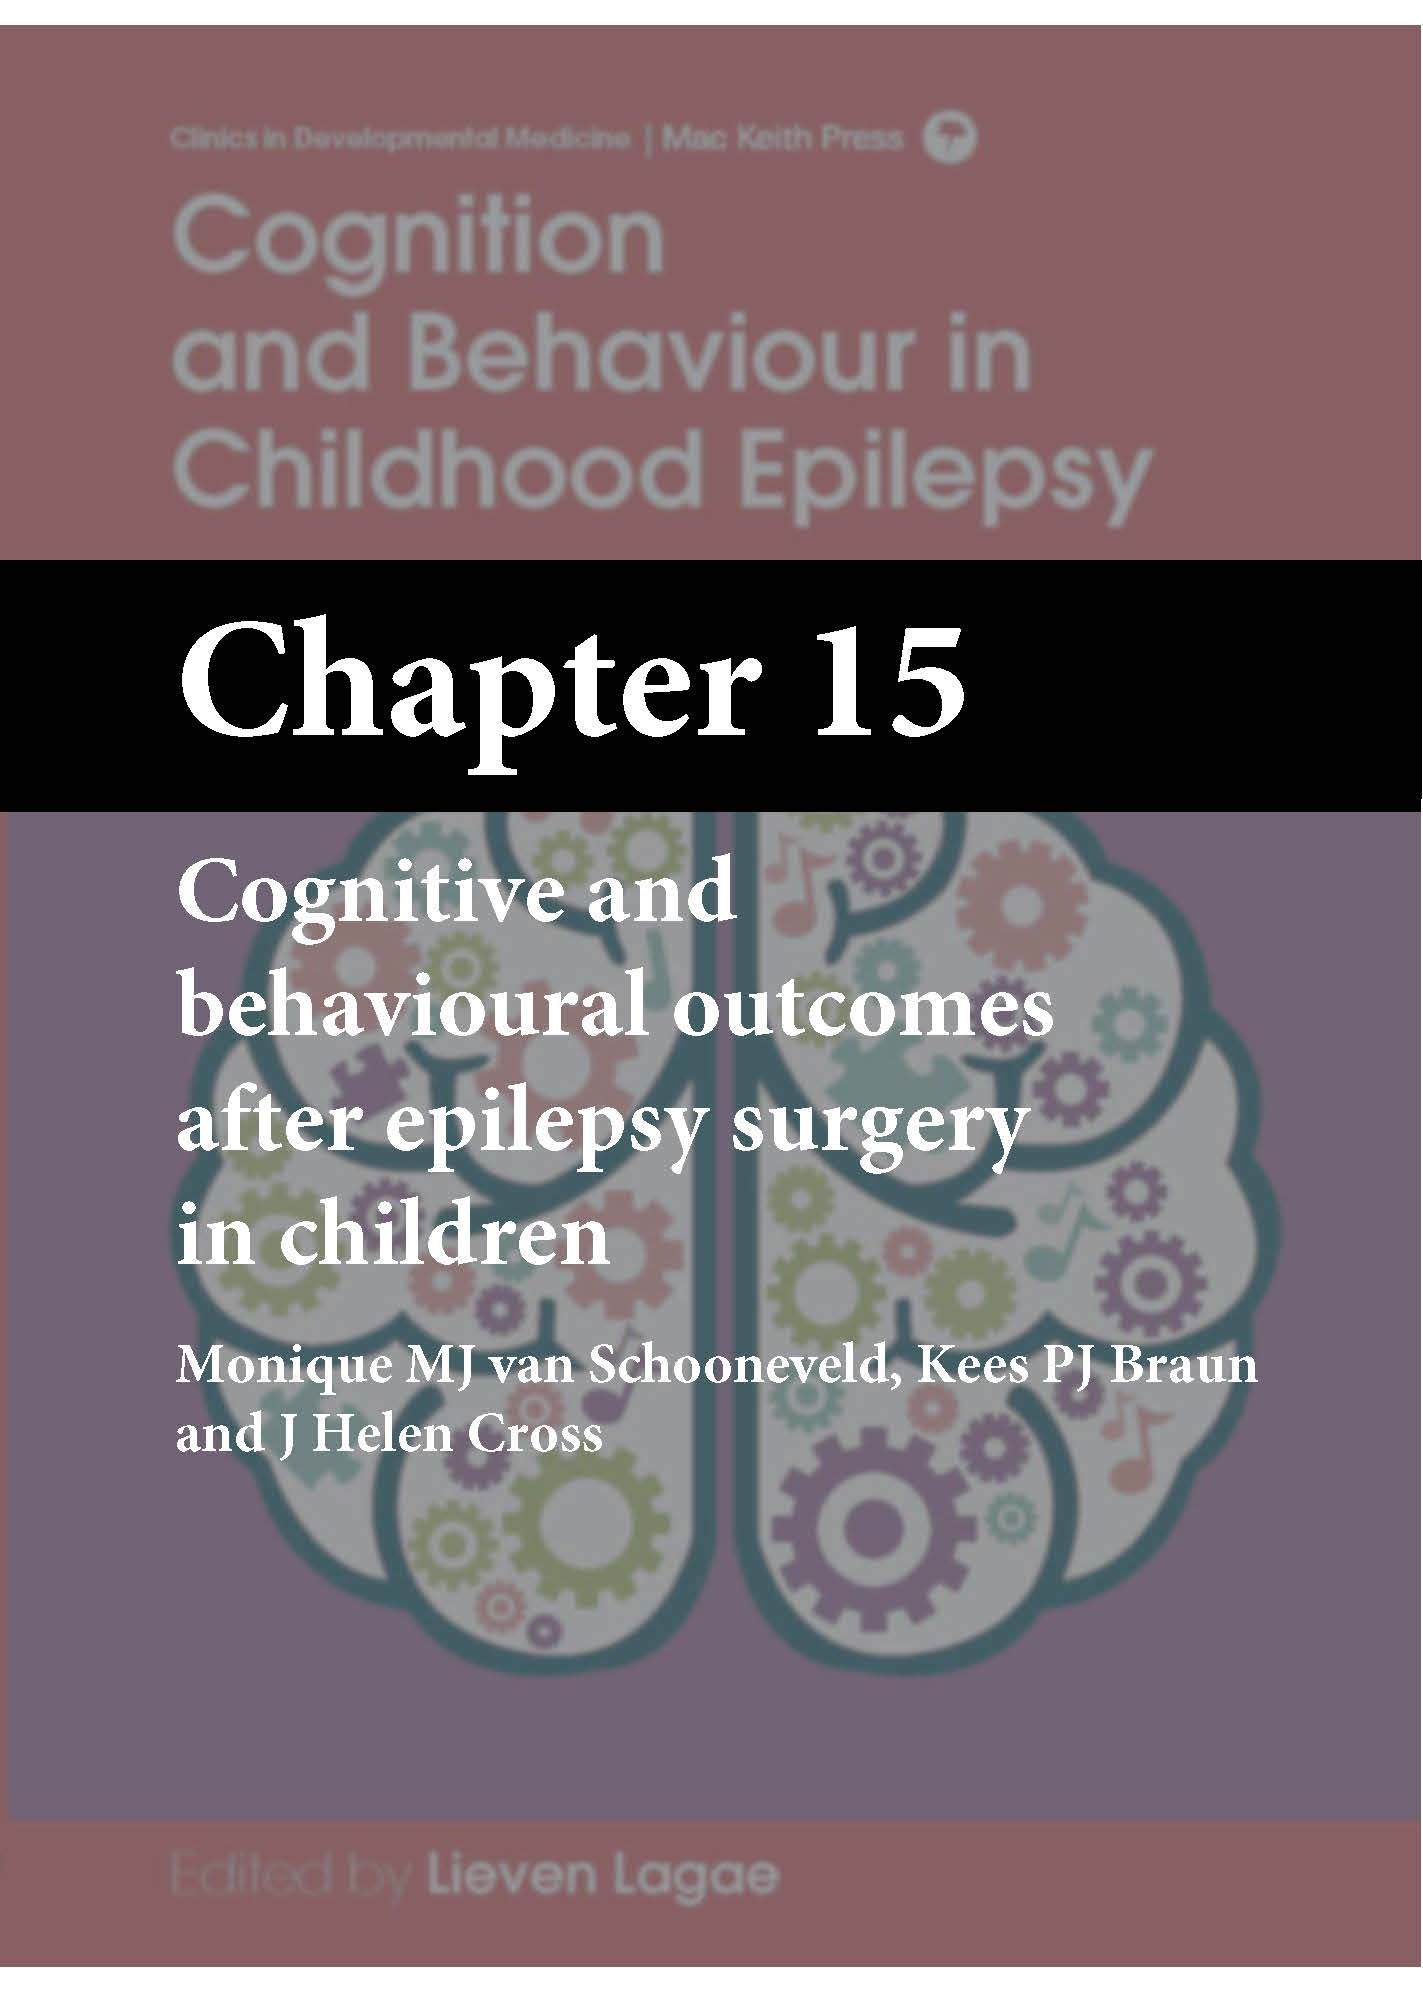 Cognition and Behaviour in Childhood Epilepsy, Lagae, Chapter 15 cover